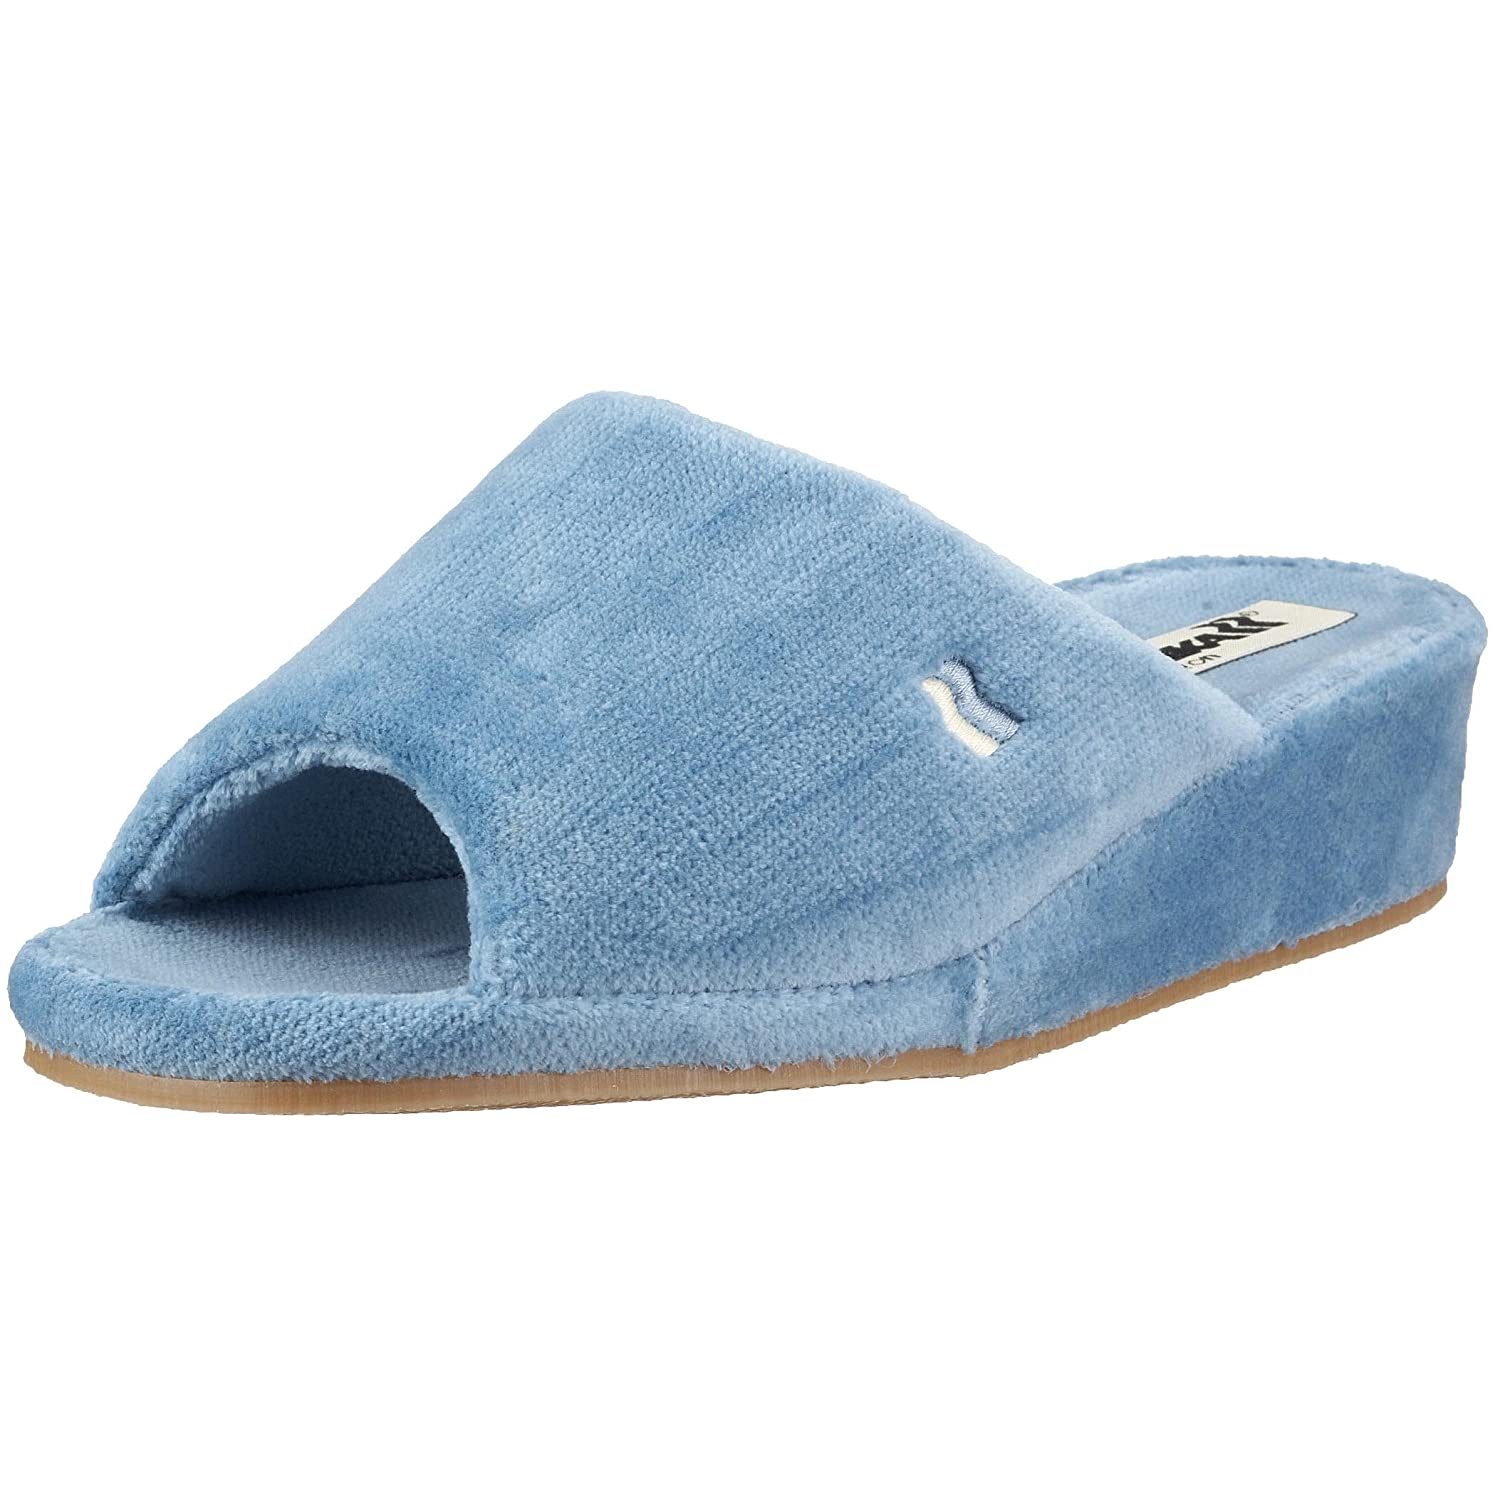 ROMIKA Paris, Mules femme Paris, Bleu B07GY2776C (Denim 3889 534) 5f8d3e1 - boatplans.space